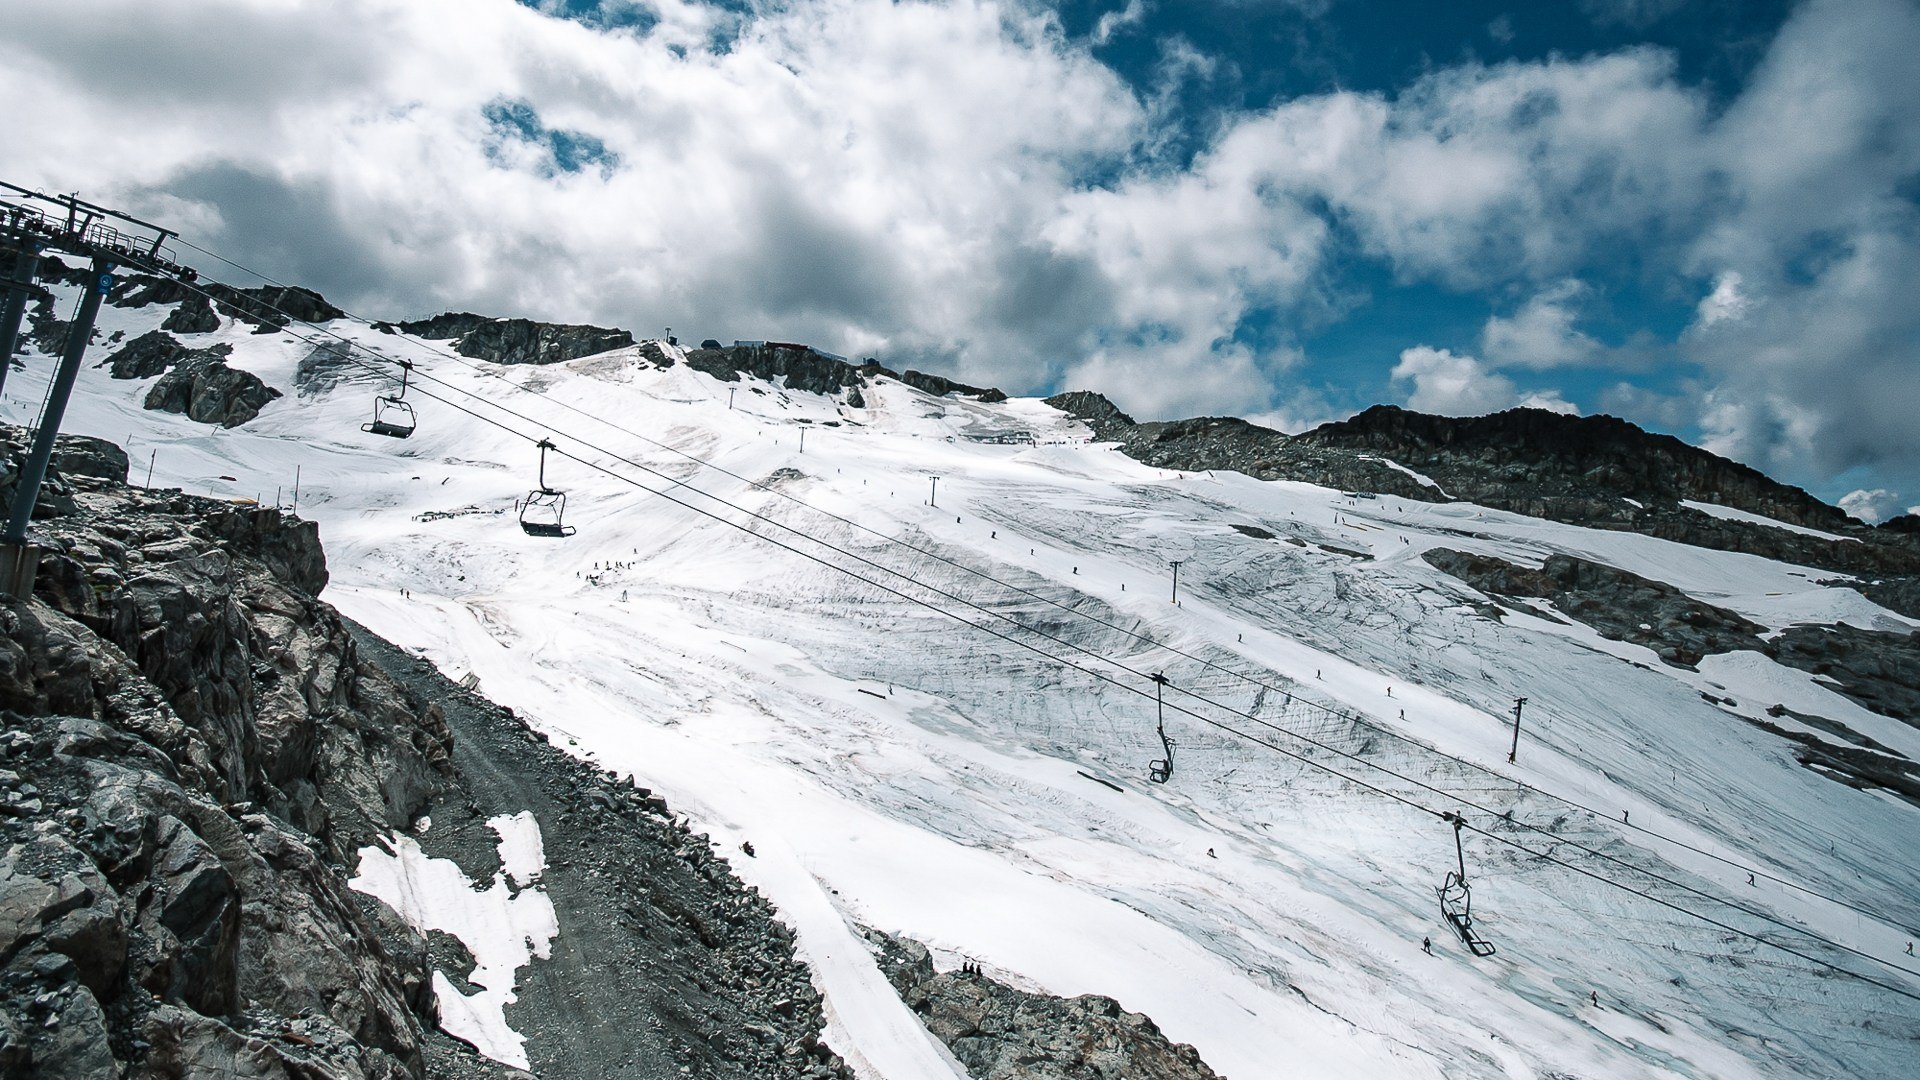 Hortsman T-bar removed from Blackcomb Glacier